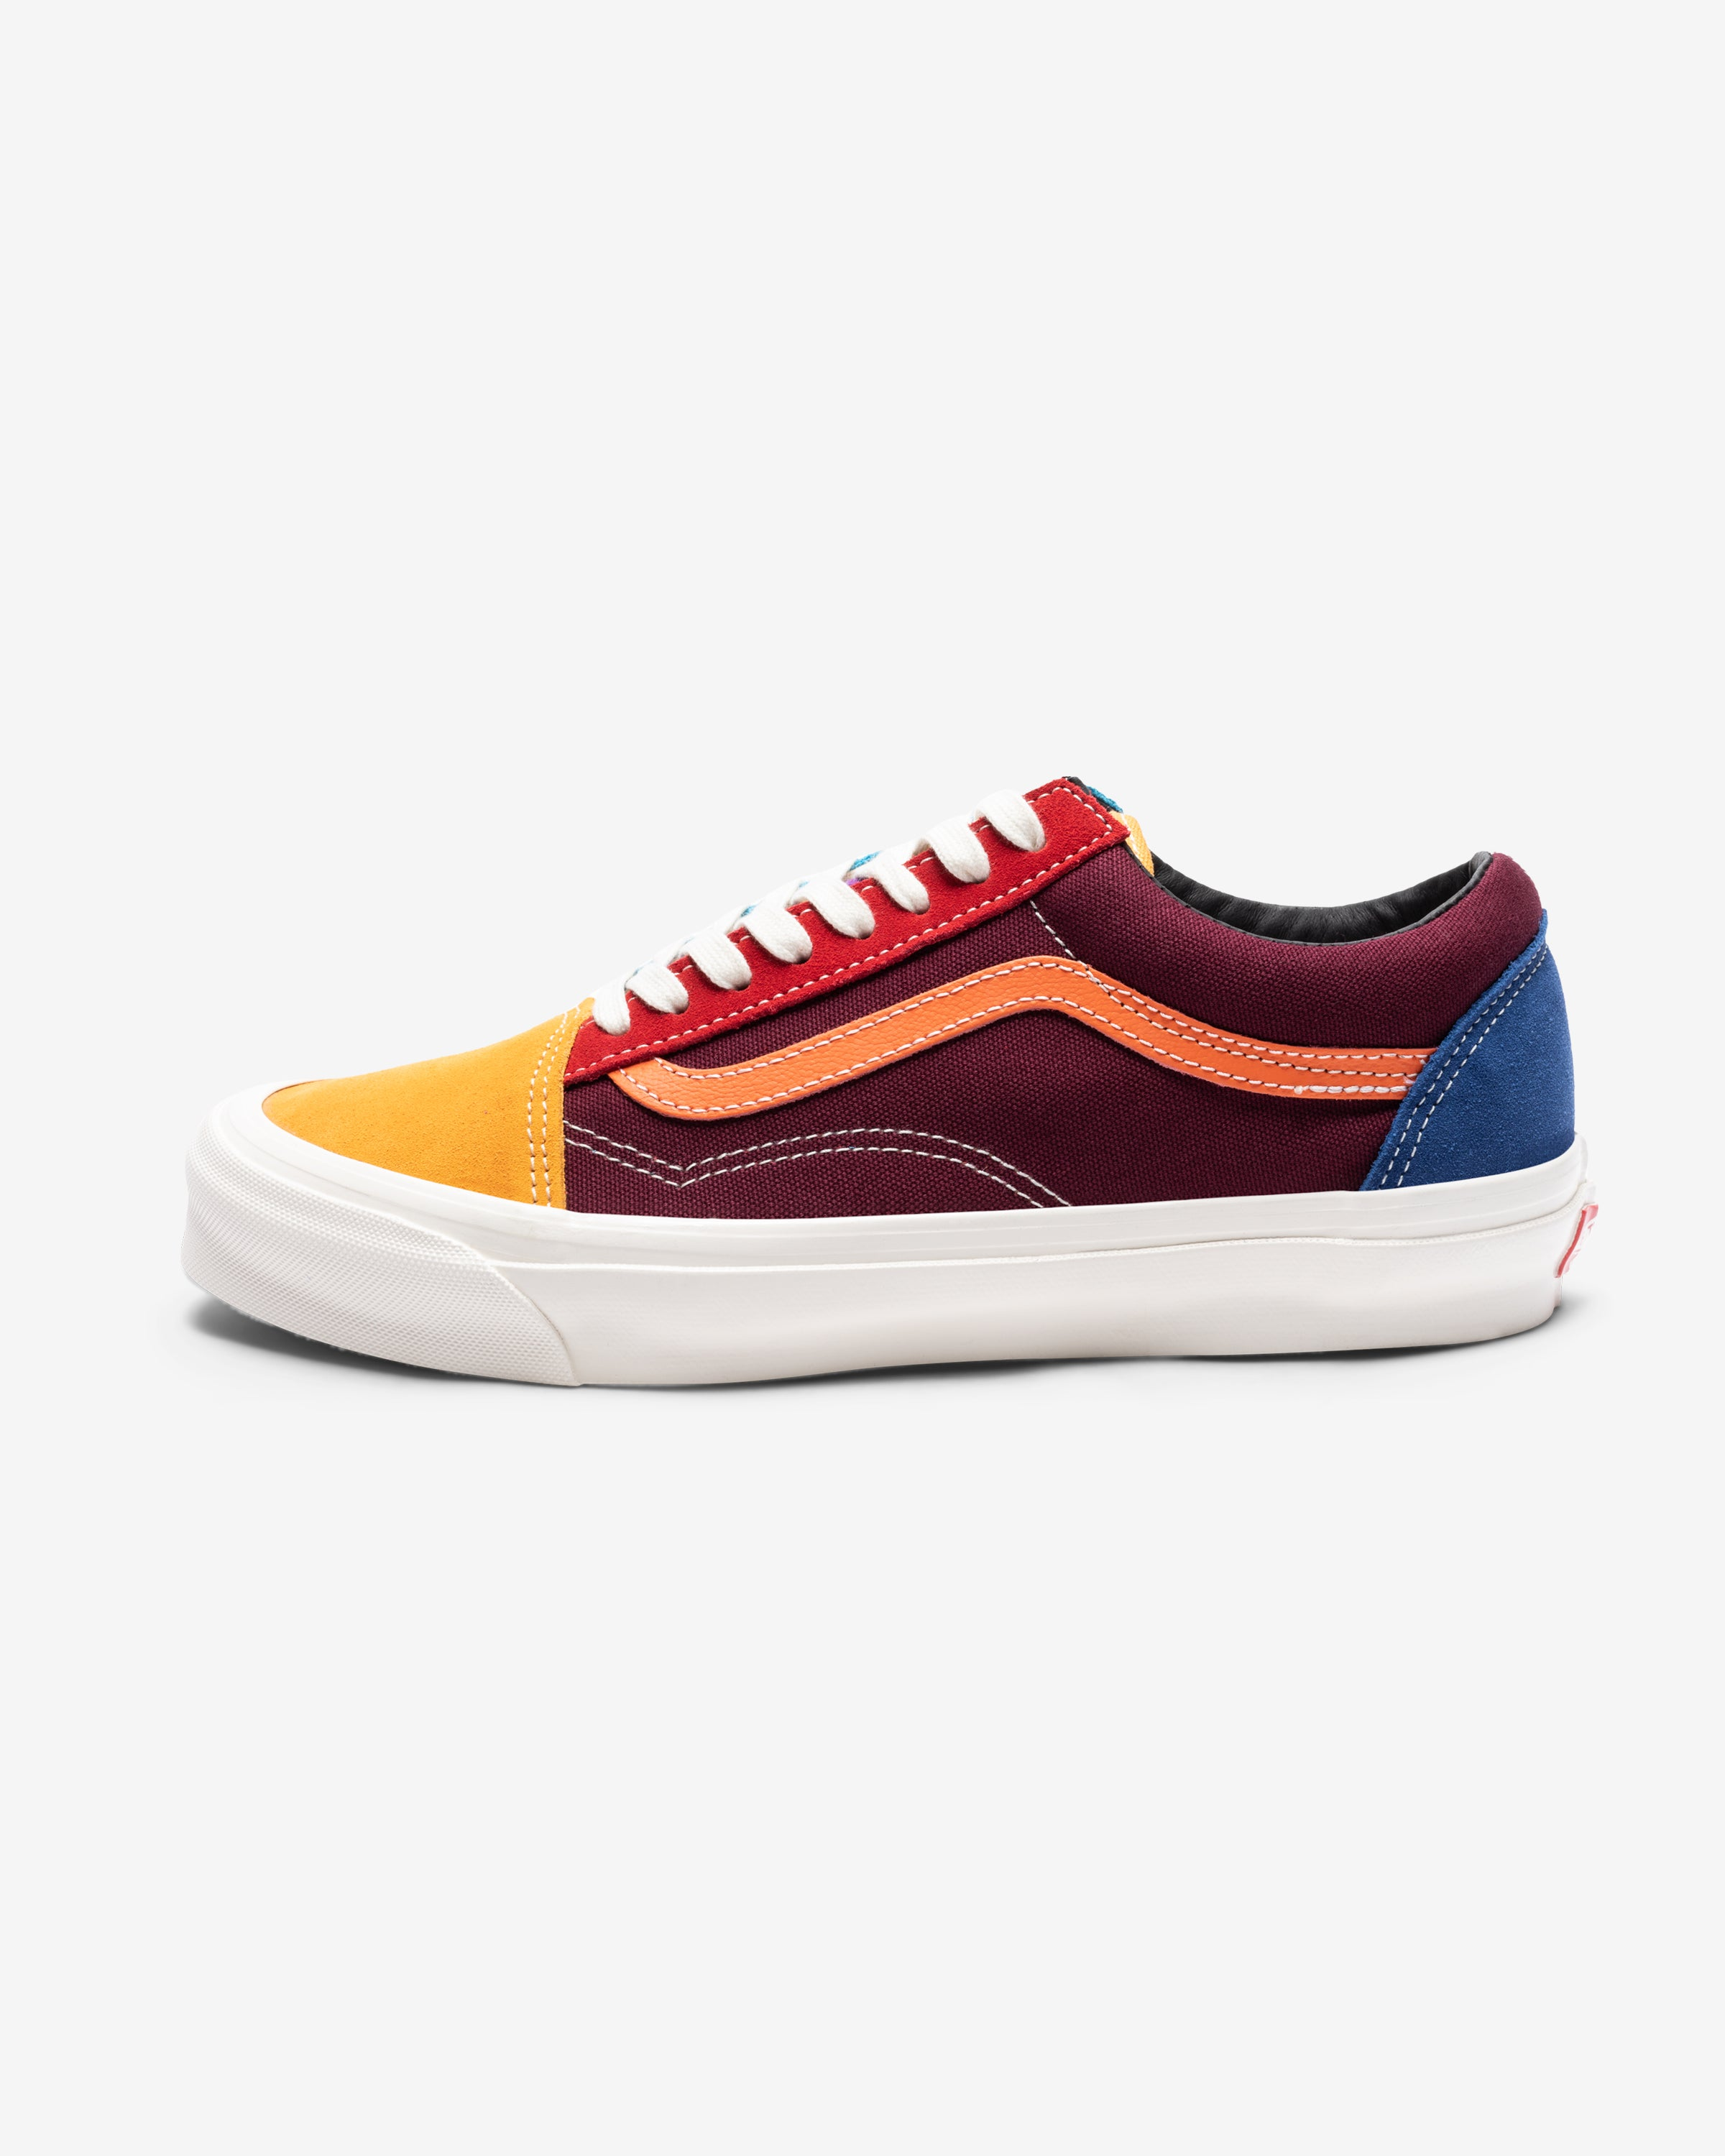 OG OLD SKOOL LX (SUEDE/CANVAS) - MULTI